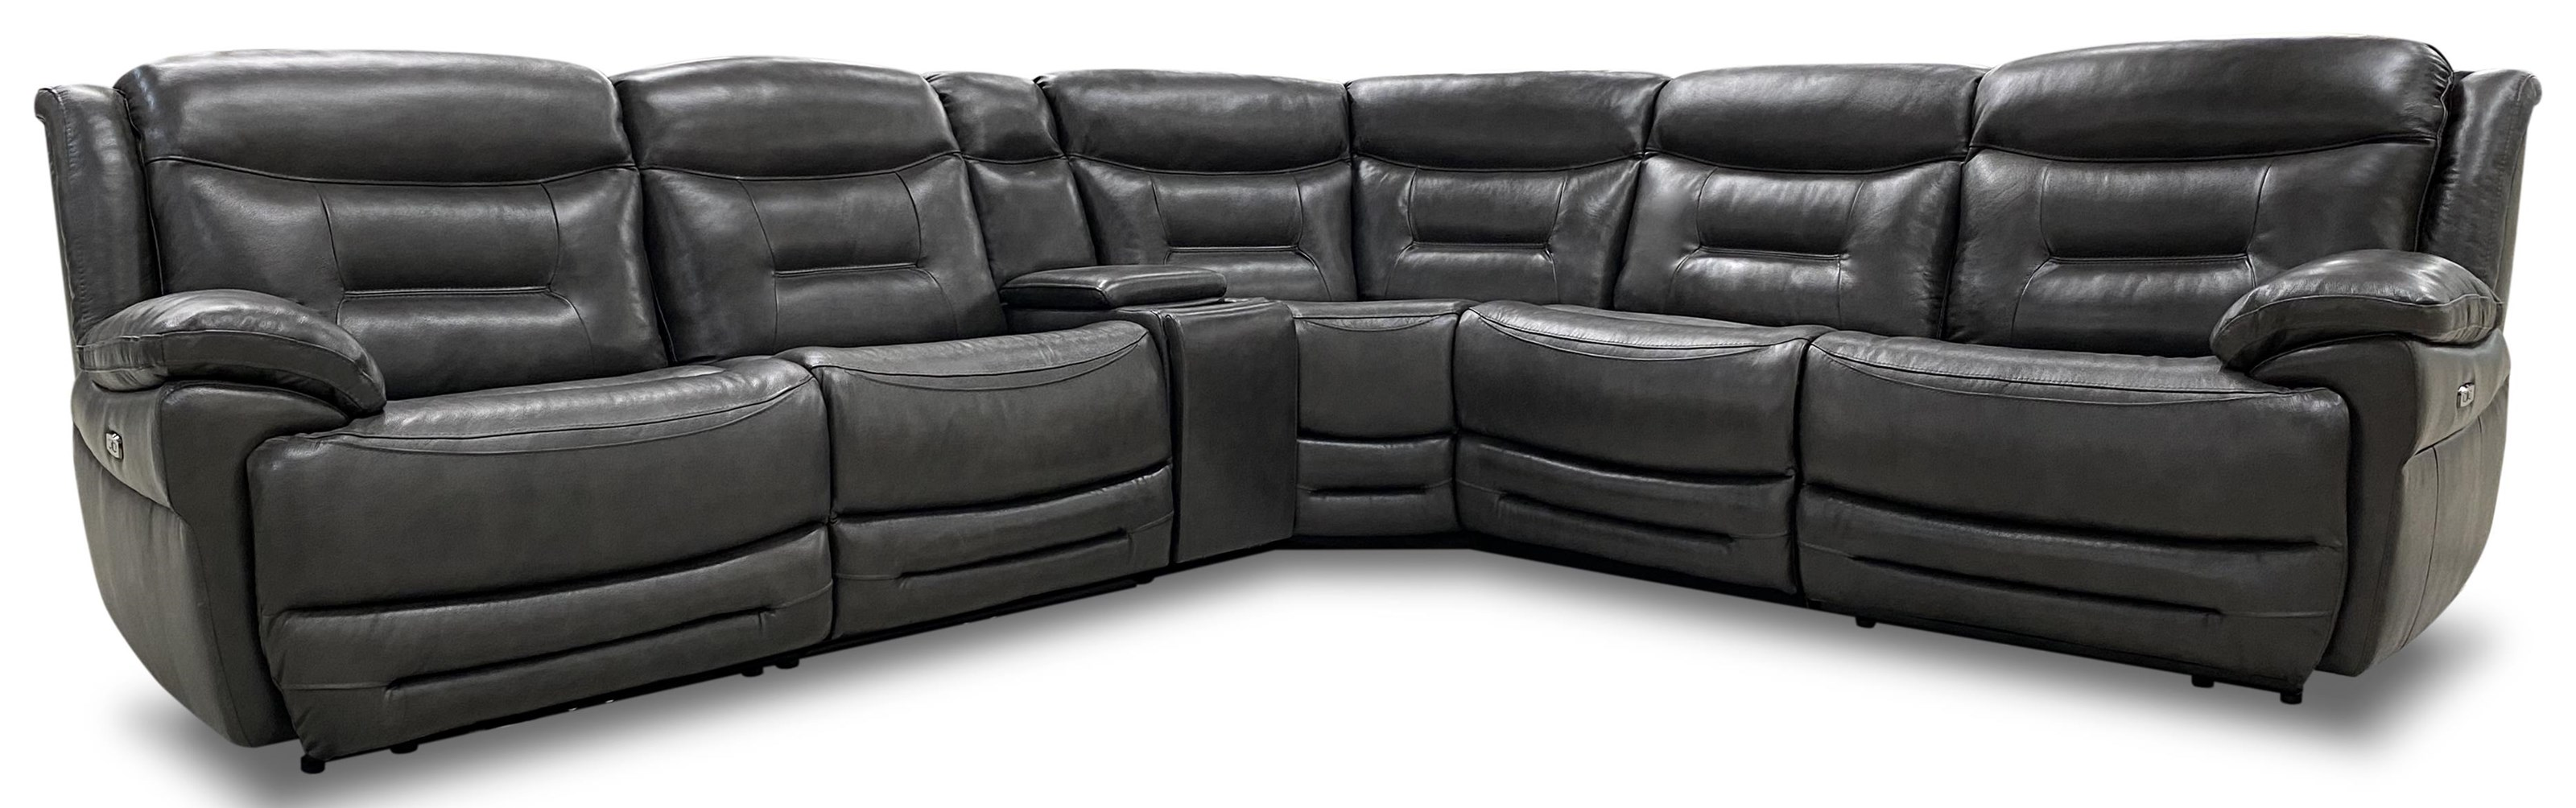 JUDE LEATHER RECLINING SECTIONAL W/ PWR HEADRESTS by K.C. at Walker's Furniture